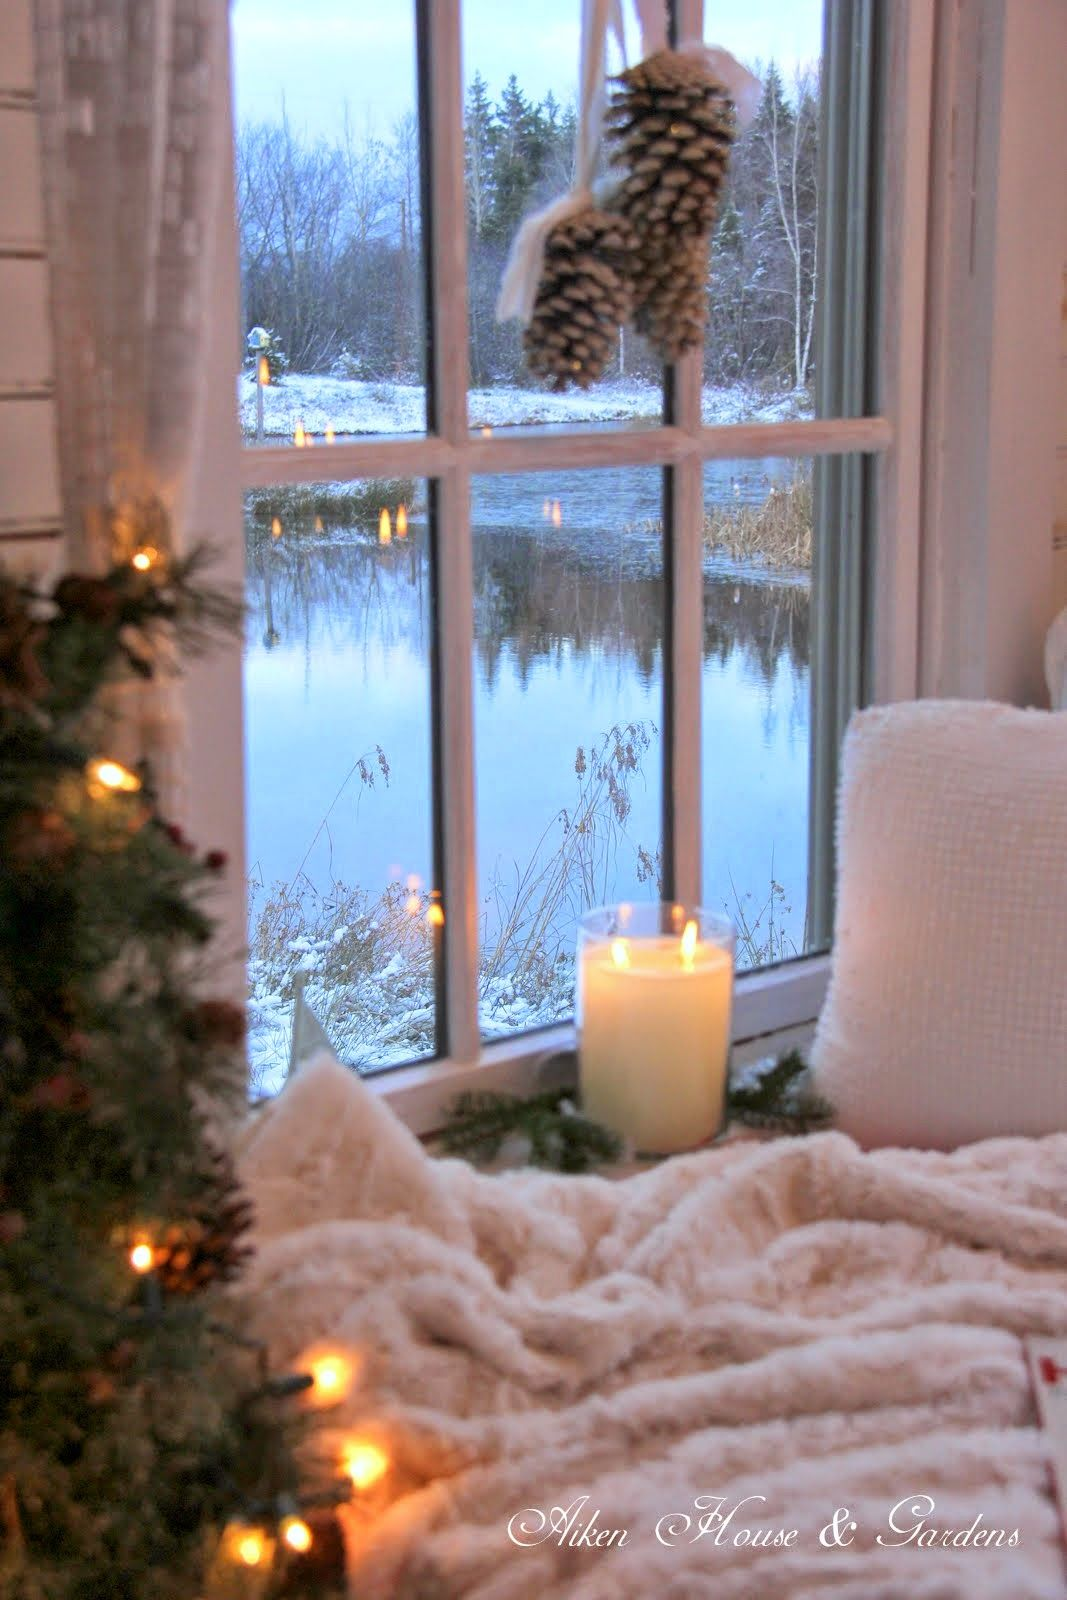 Cozy Time Thirteen Lust Worthy Fireplaces: Imagine Sitting By This Windowsill. A Vanilla Candle